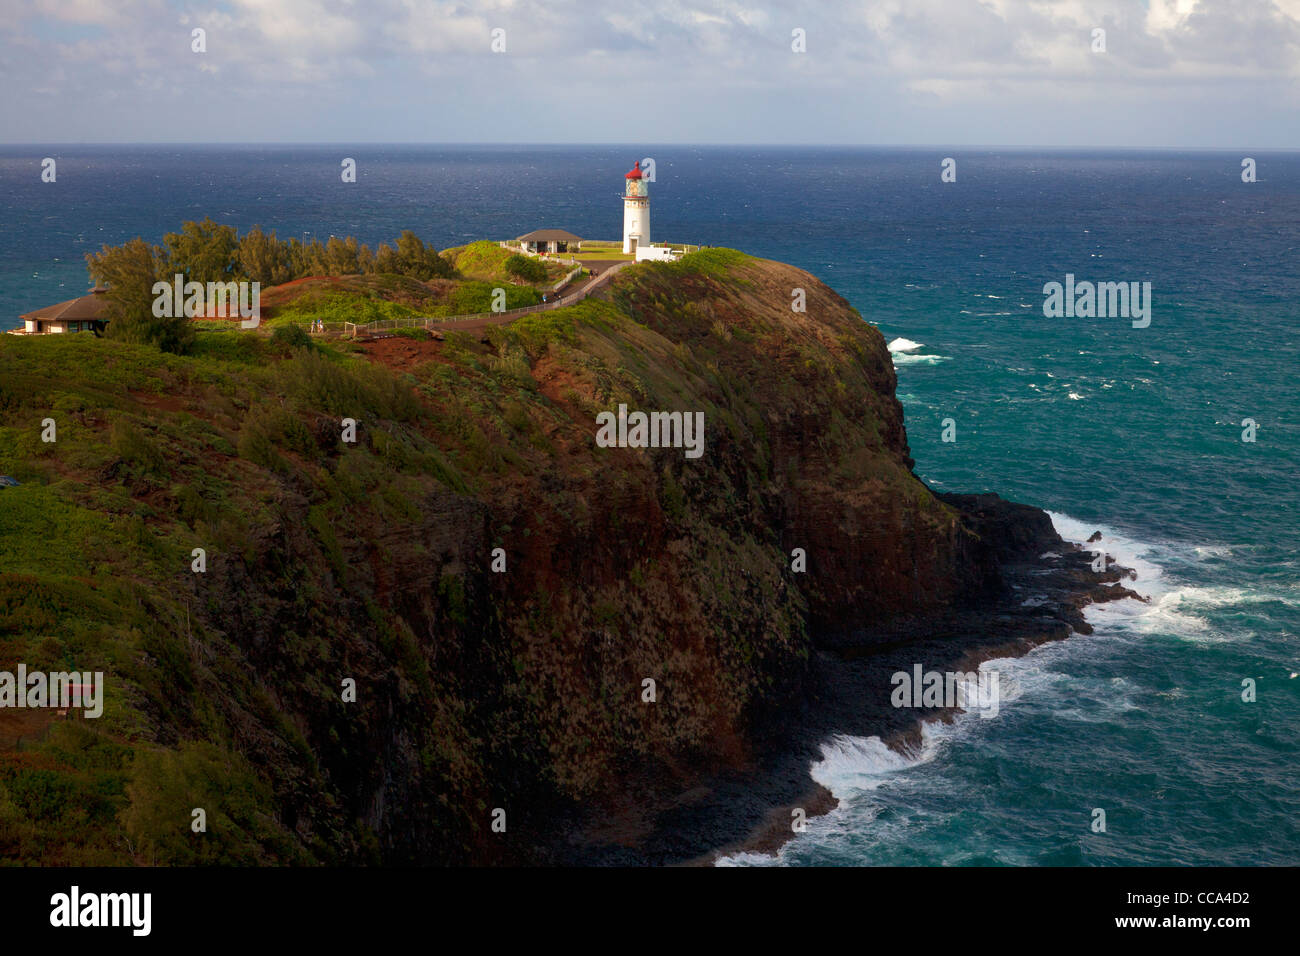 Kilauea Lighthouse, Kauai, Hawaii. - Stock Image